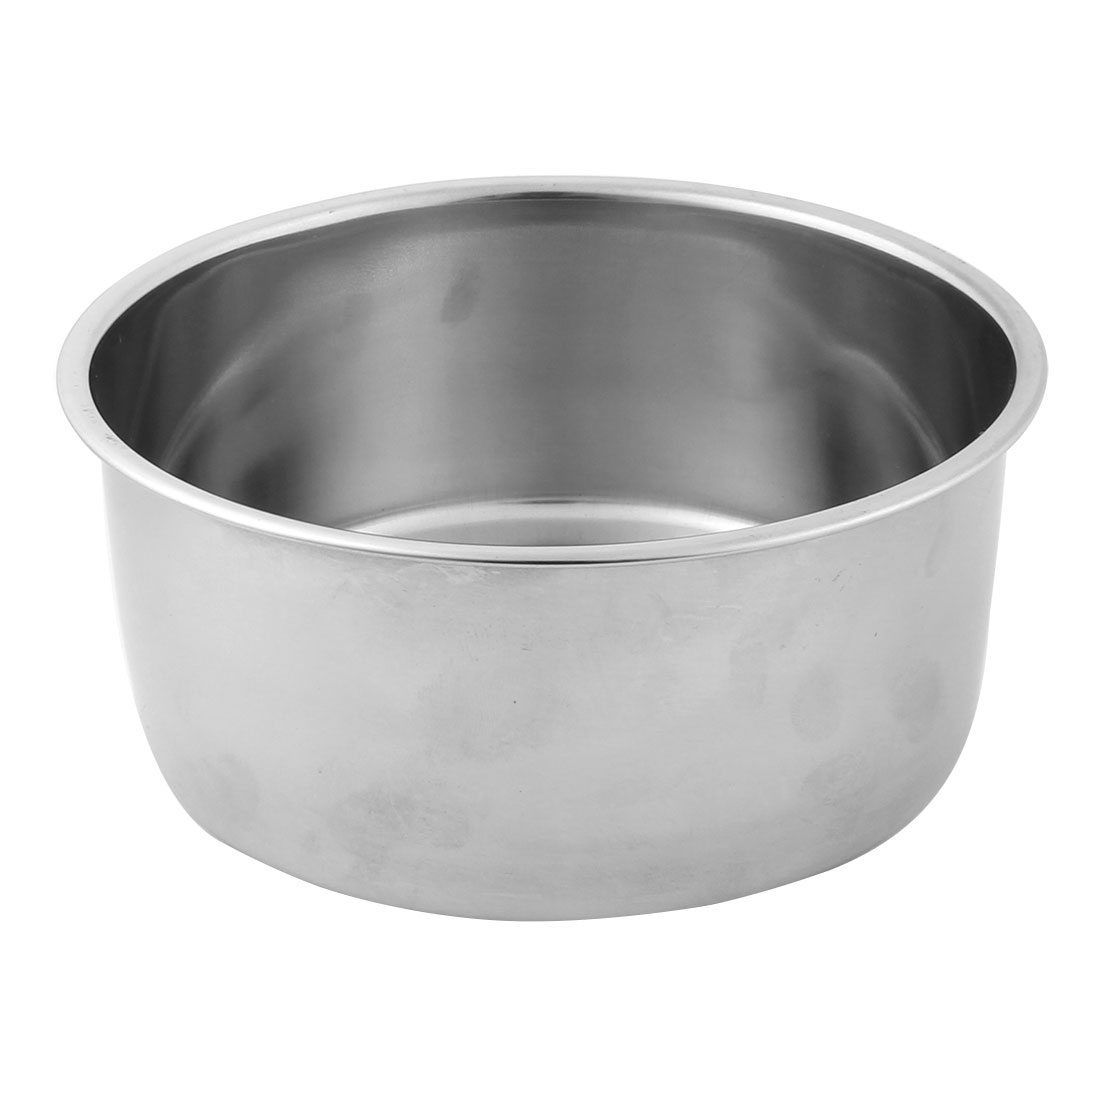 Outdoor Camping Picnic BBQ Stainless Steel Oil Soy Sauce Bowl Holder Silver Tone 13cm Dia